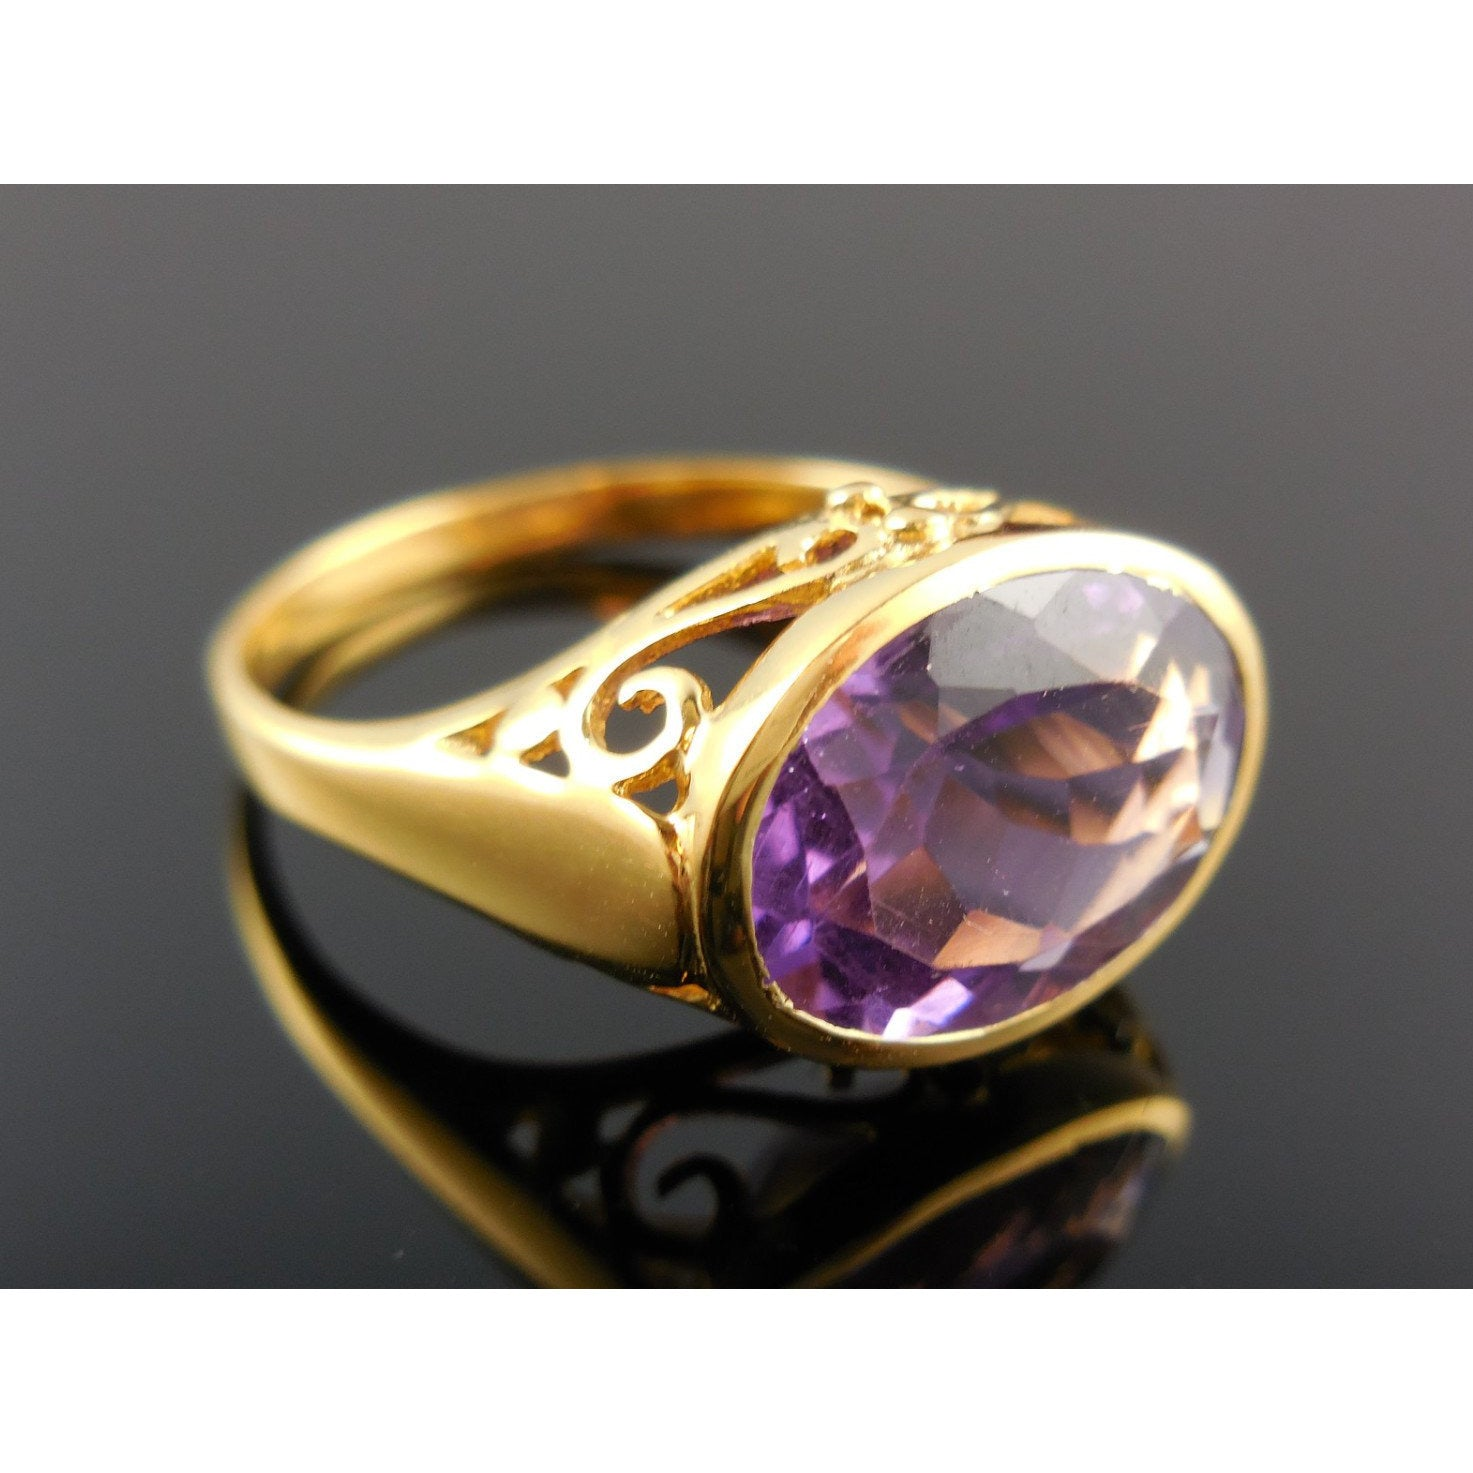 Amethyst Gemstone 18kt Gold-Over-Sterling Silver (Vermeil) Ring - Size 9.25